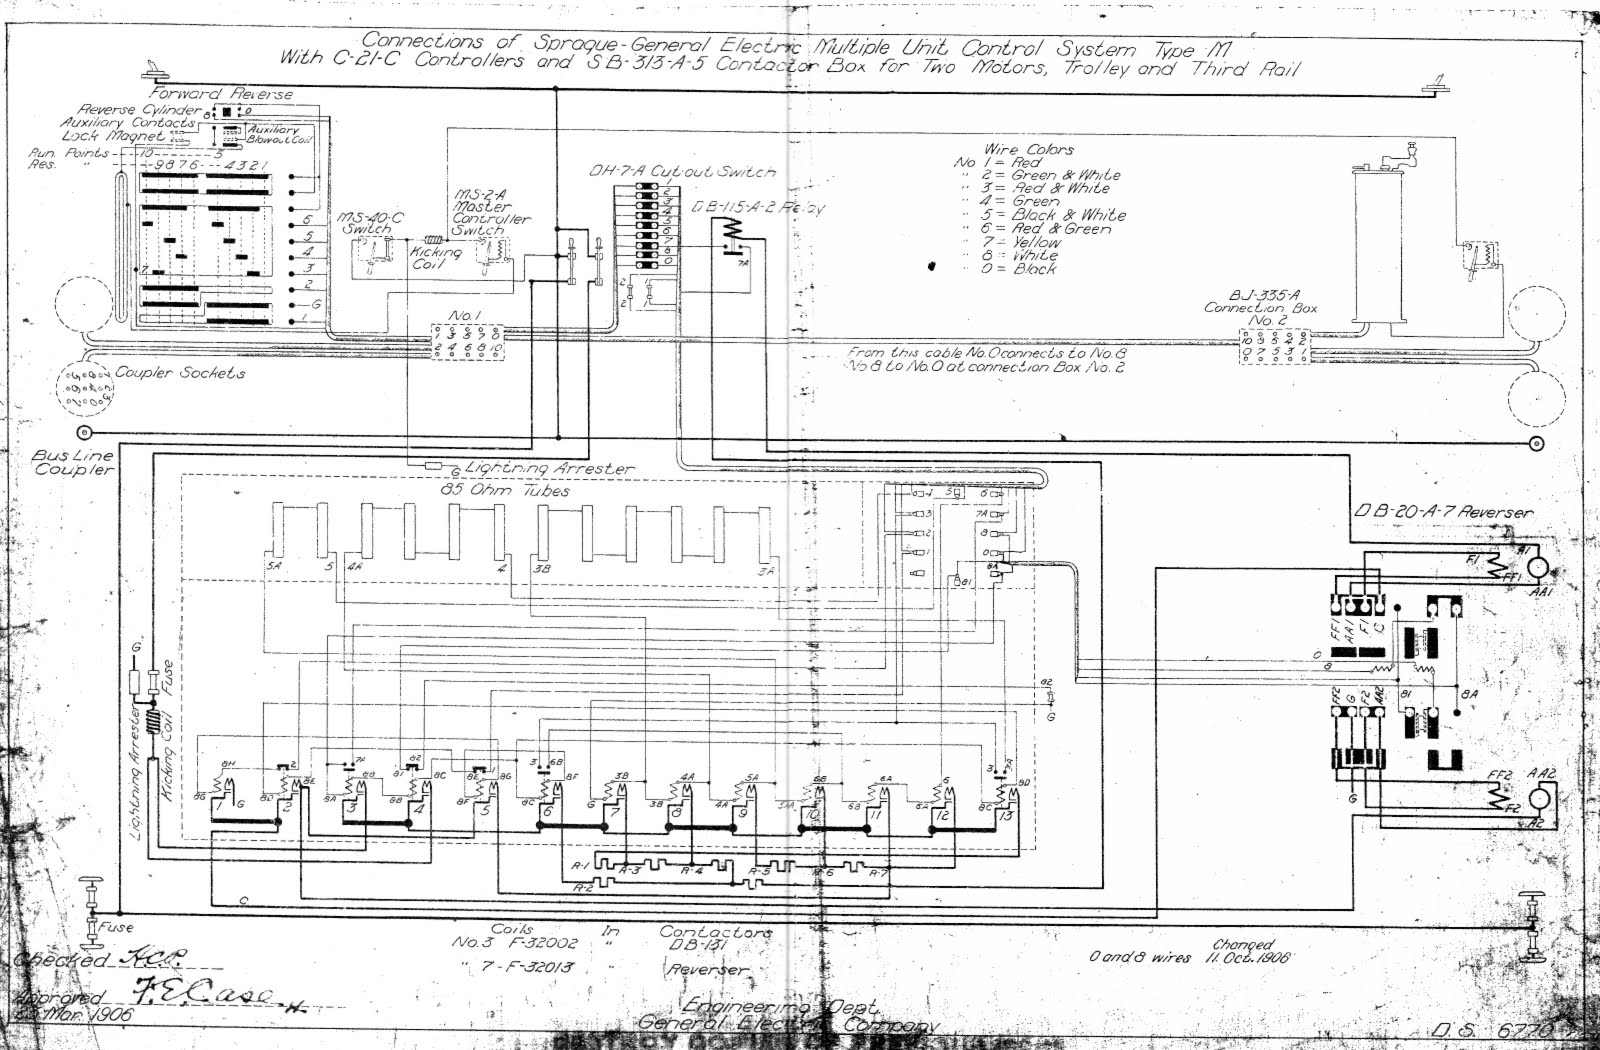 100 amp fuse box schematic diagram wiring library rh 44 boogweb nl